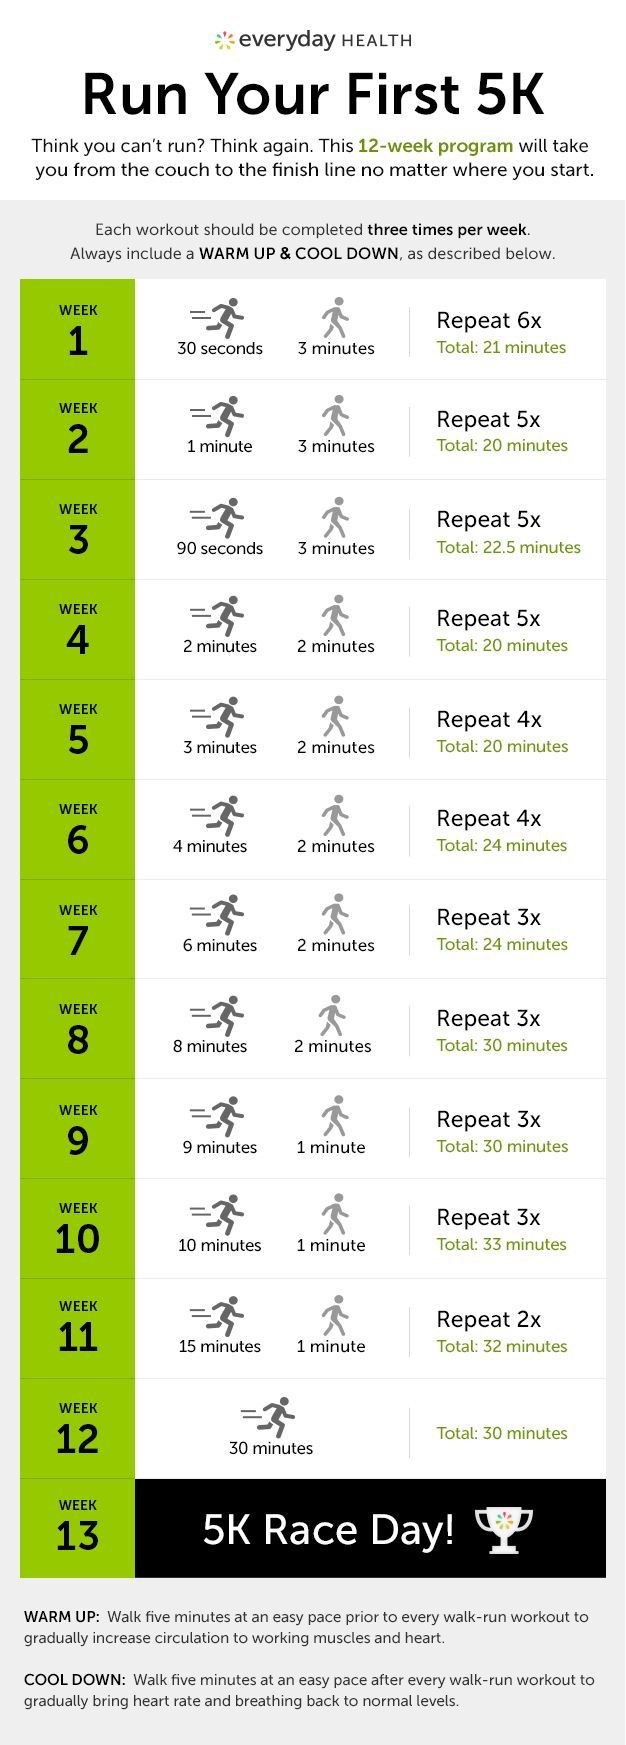 13-week training program for beginner runners who are ready for a 5K race! #NationalRunningDay